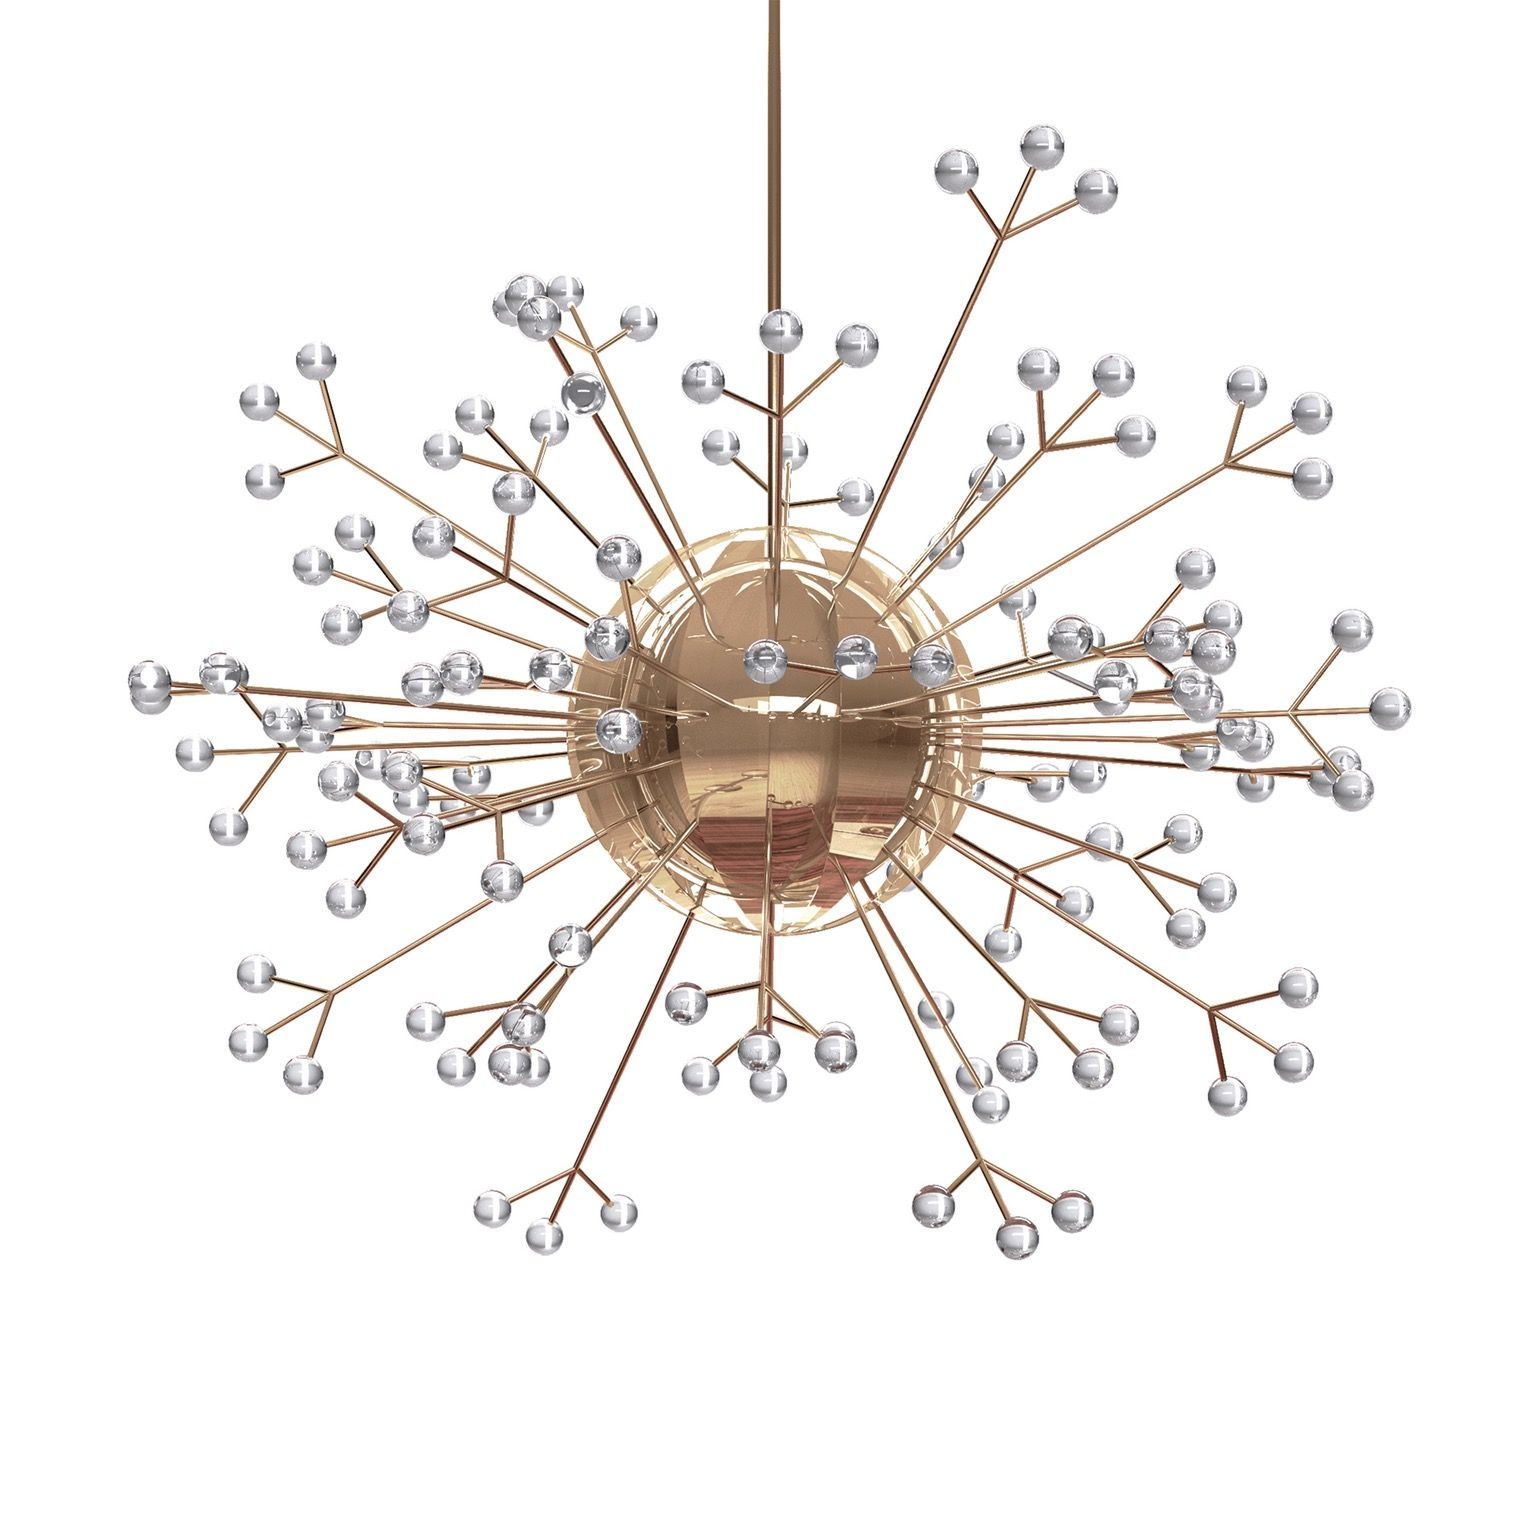 Best chandelier brands chandelier designs 27 best modern chandeliers chandelier lighting chandelier brands aloadofball Images